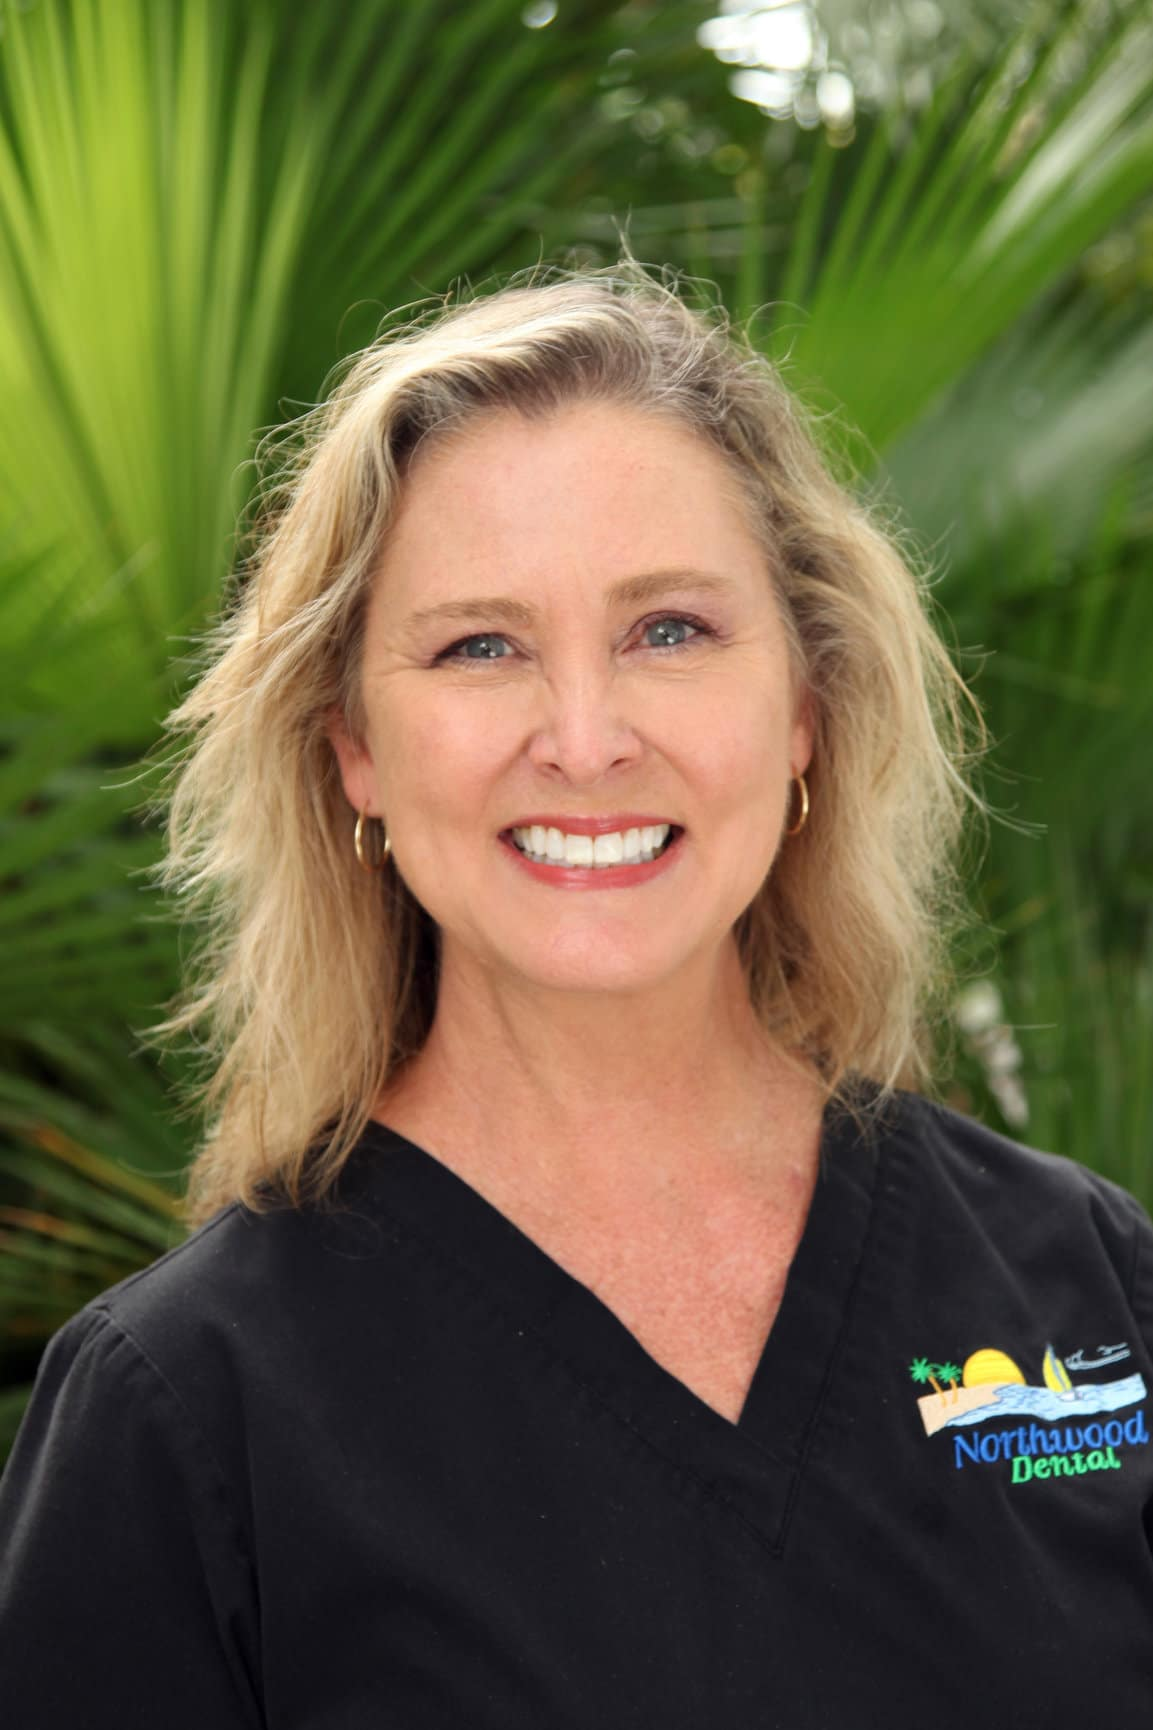 Tami King Hygienist - Northwood Dental - Clearwater, Florida